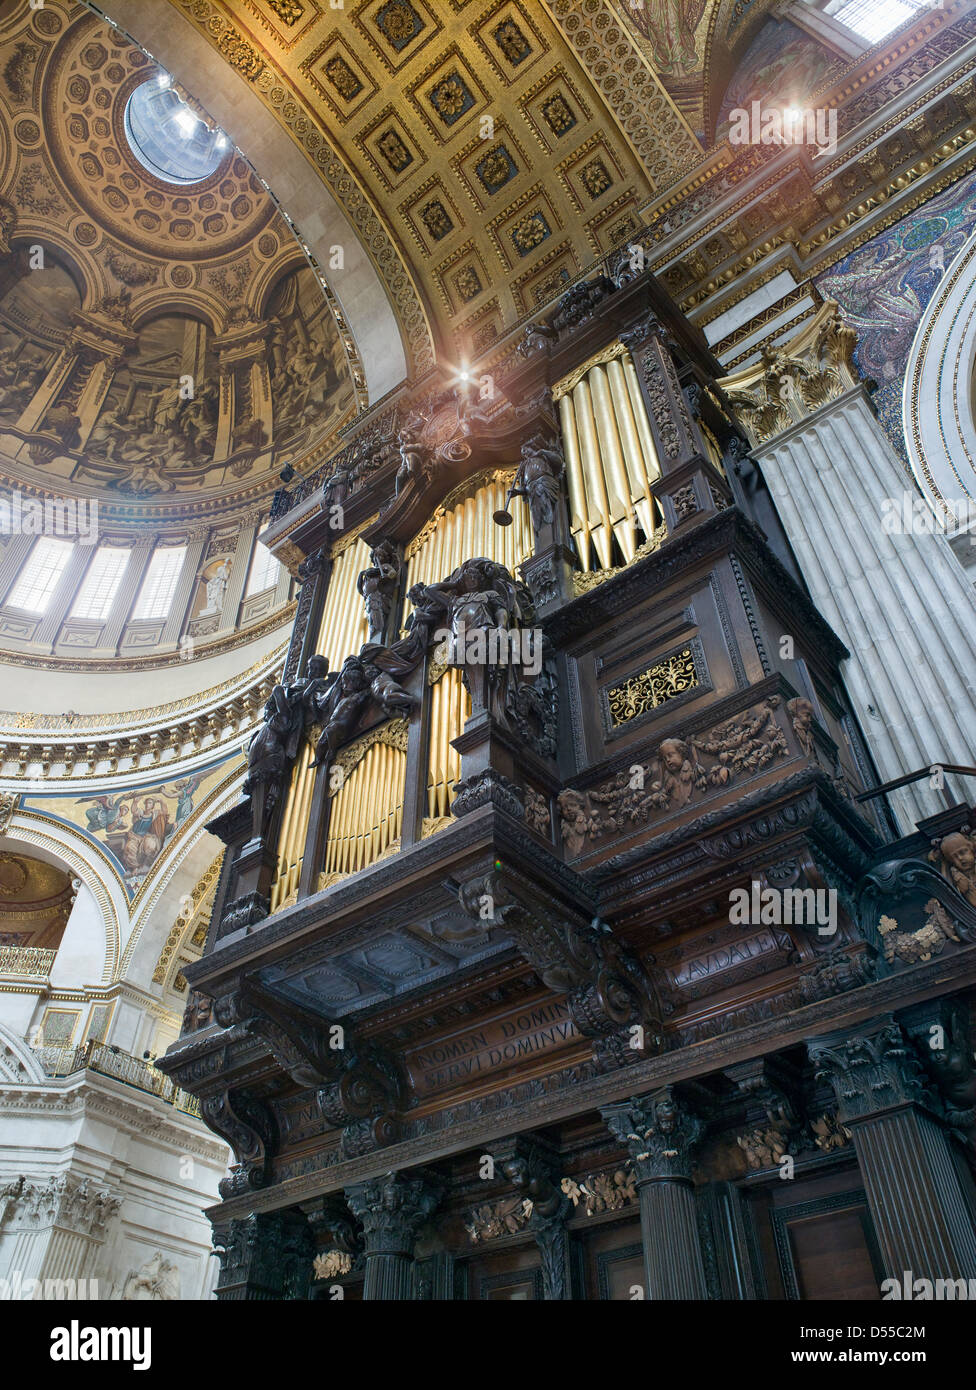 St Paul's Cathedral Organ case - Stock Image